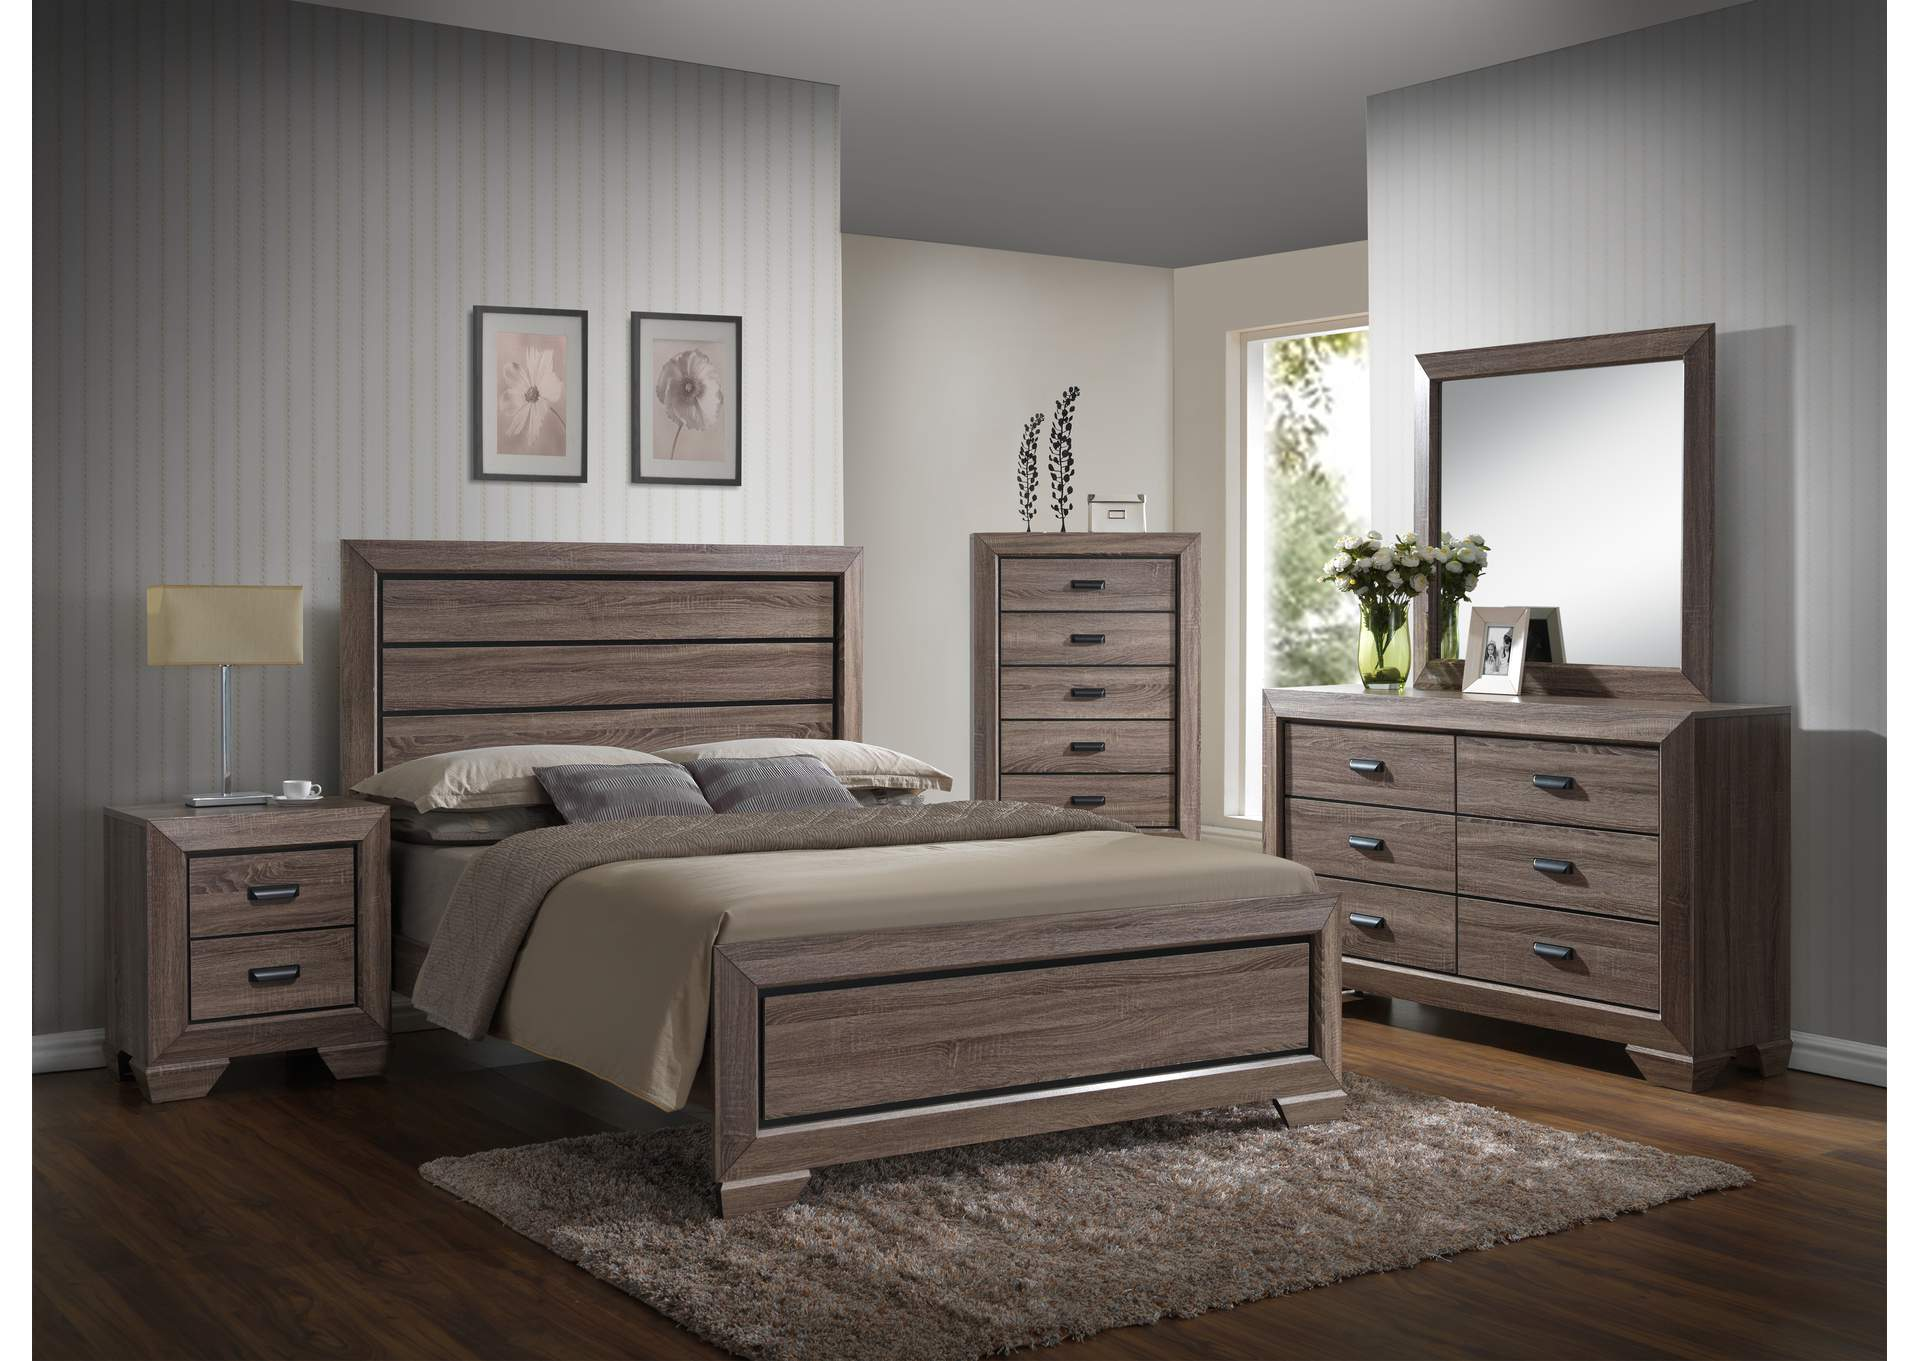 Sand Panel Queen 6 Piece Bedroom Set W/ 2 Nightstand, Chest, Dresser & Mirror,Global Trading